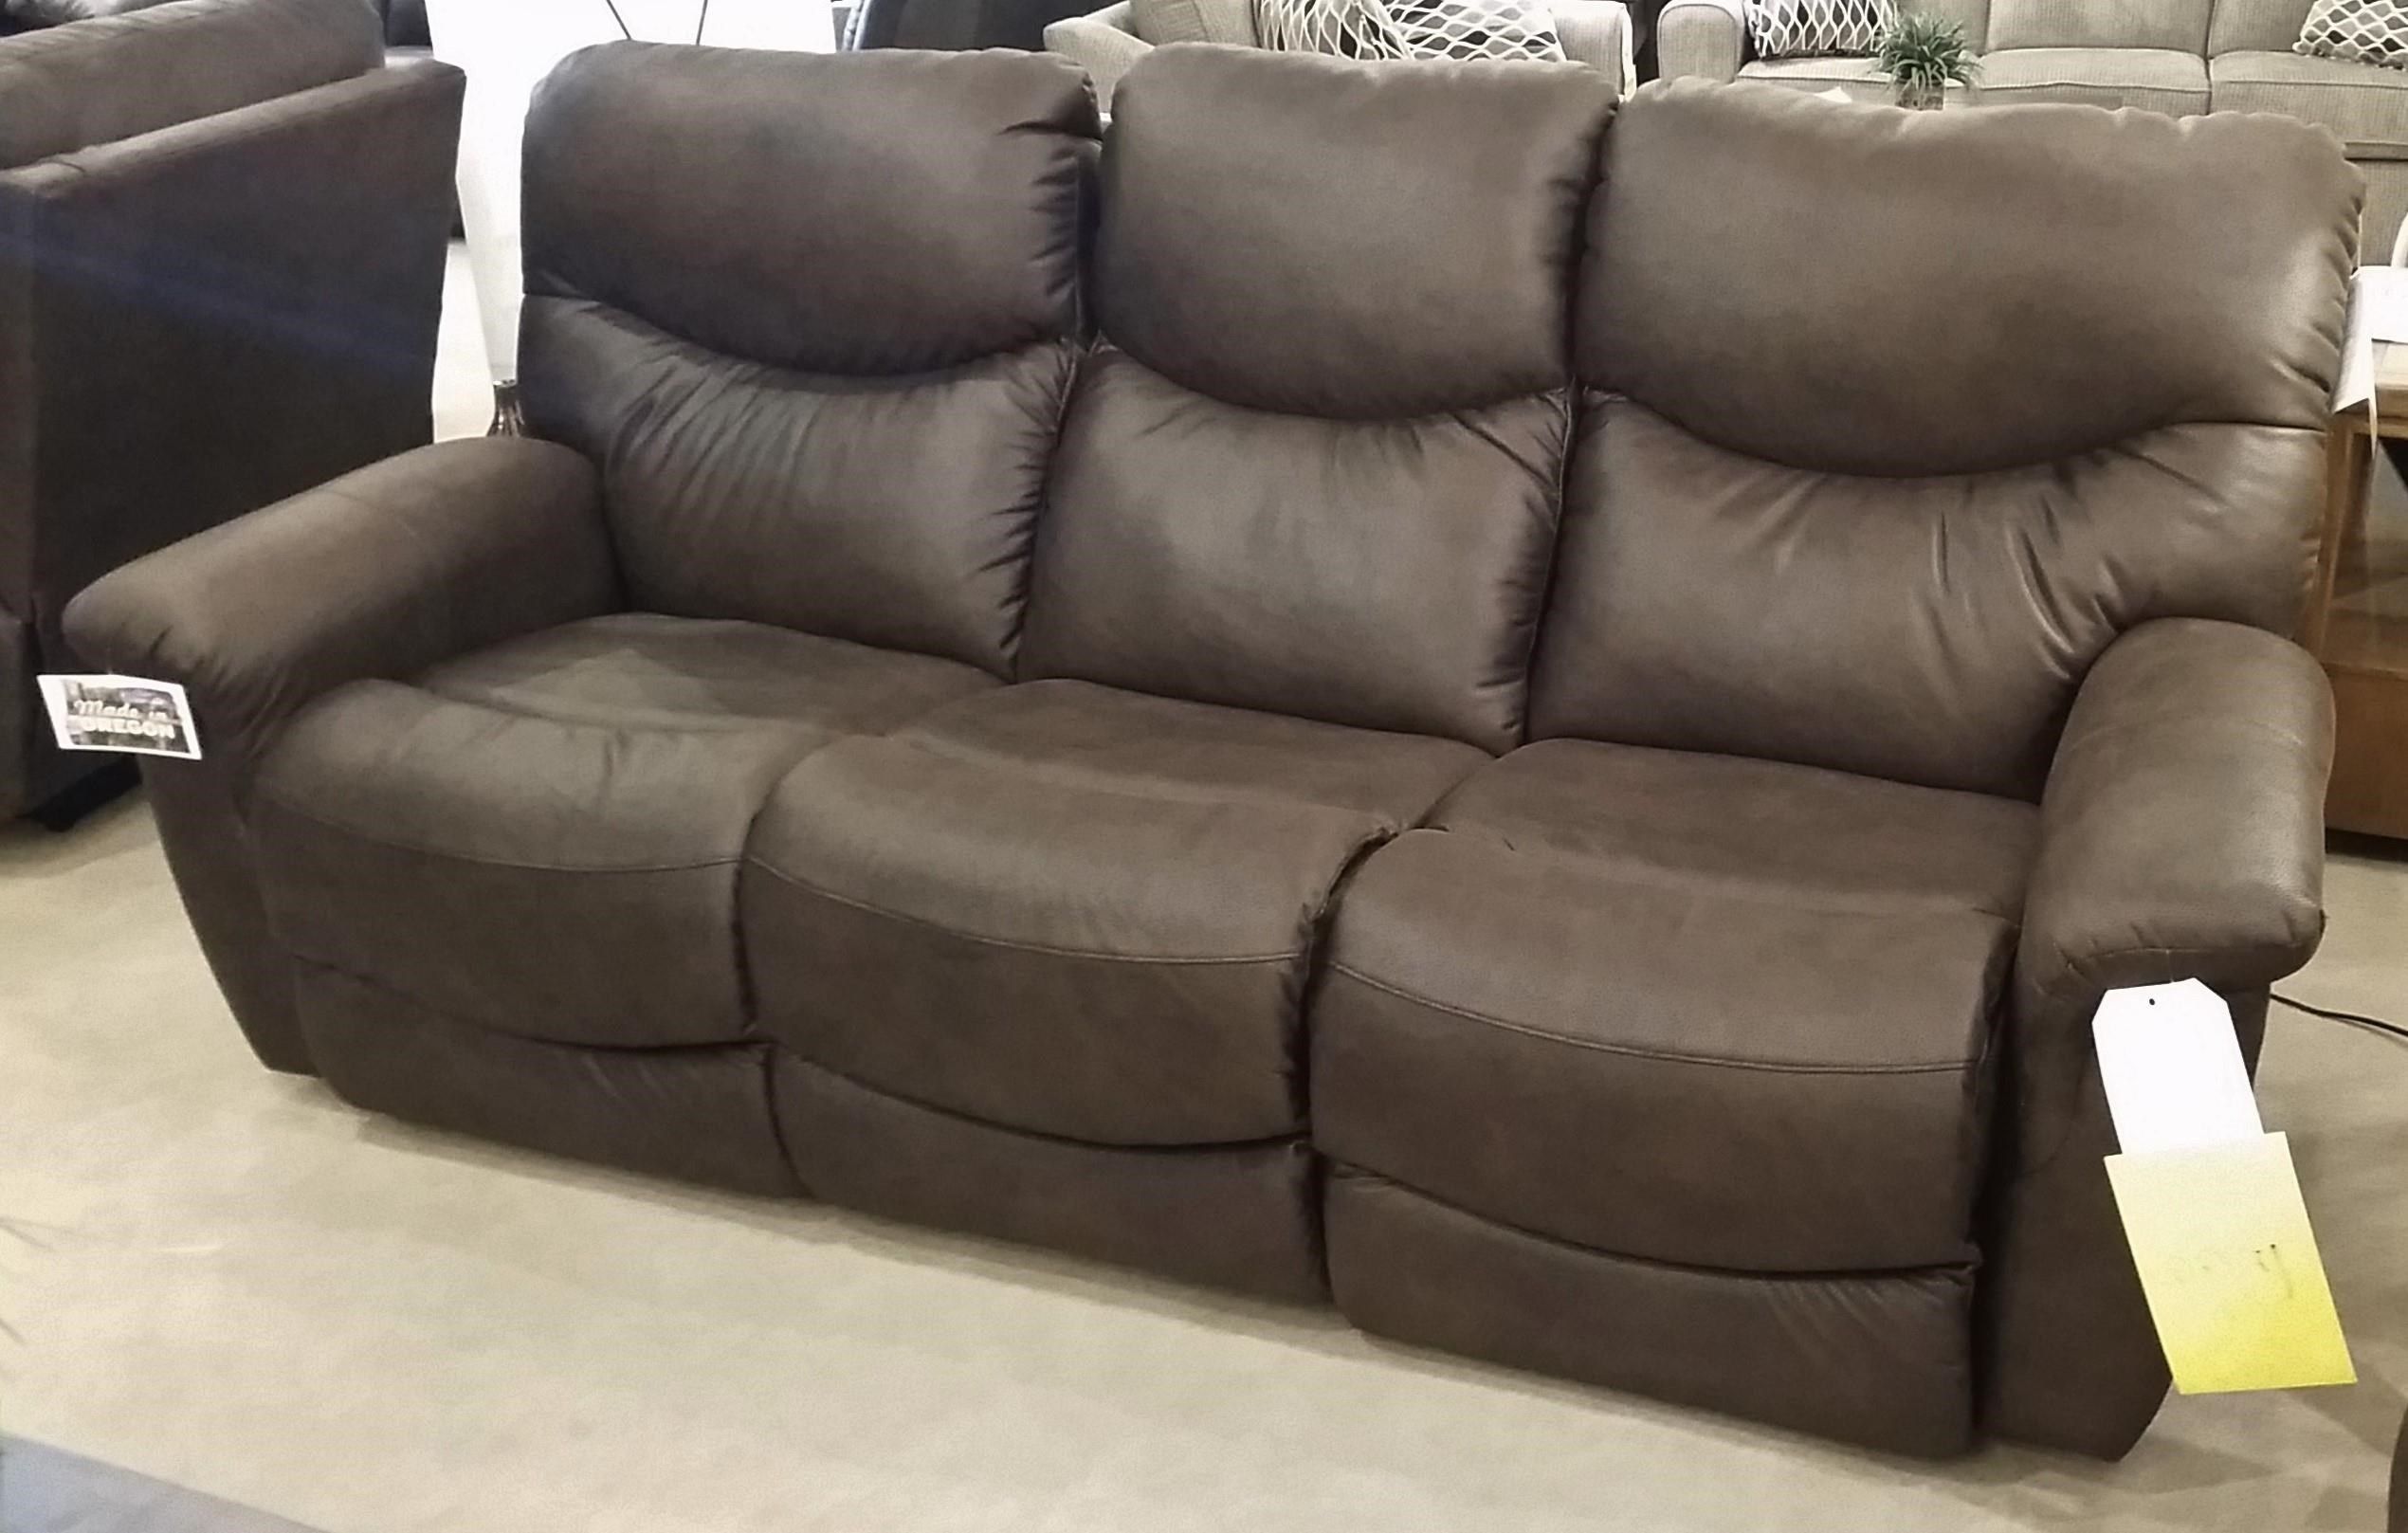 Stanton 936 Casual Power Reclining Sofa With Power Headrest/Lumbar And USB